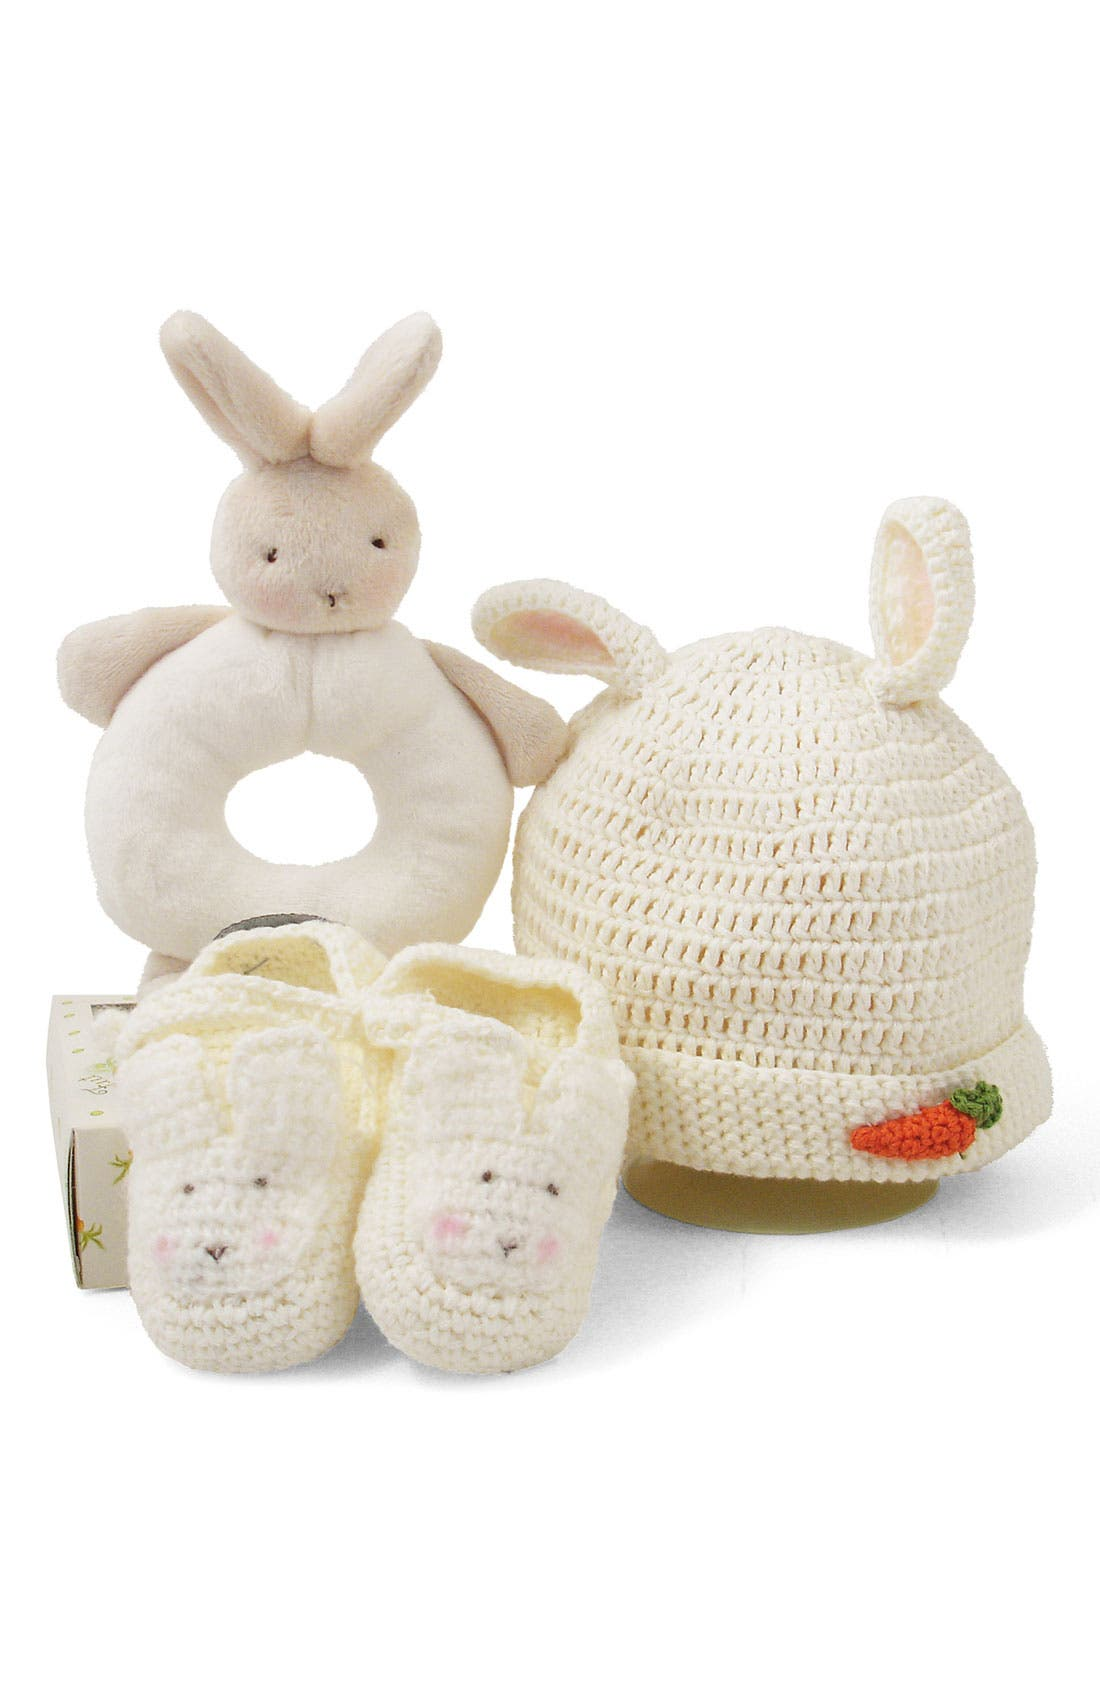 Alternate Image 1 Selected - Bunnies by the Bay 'Wee Bunny' Rattle, Bootie & Hat Set (Baby)